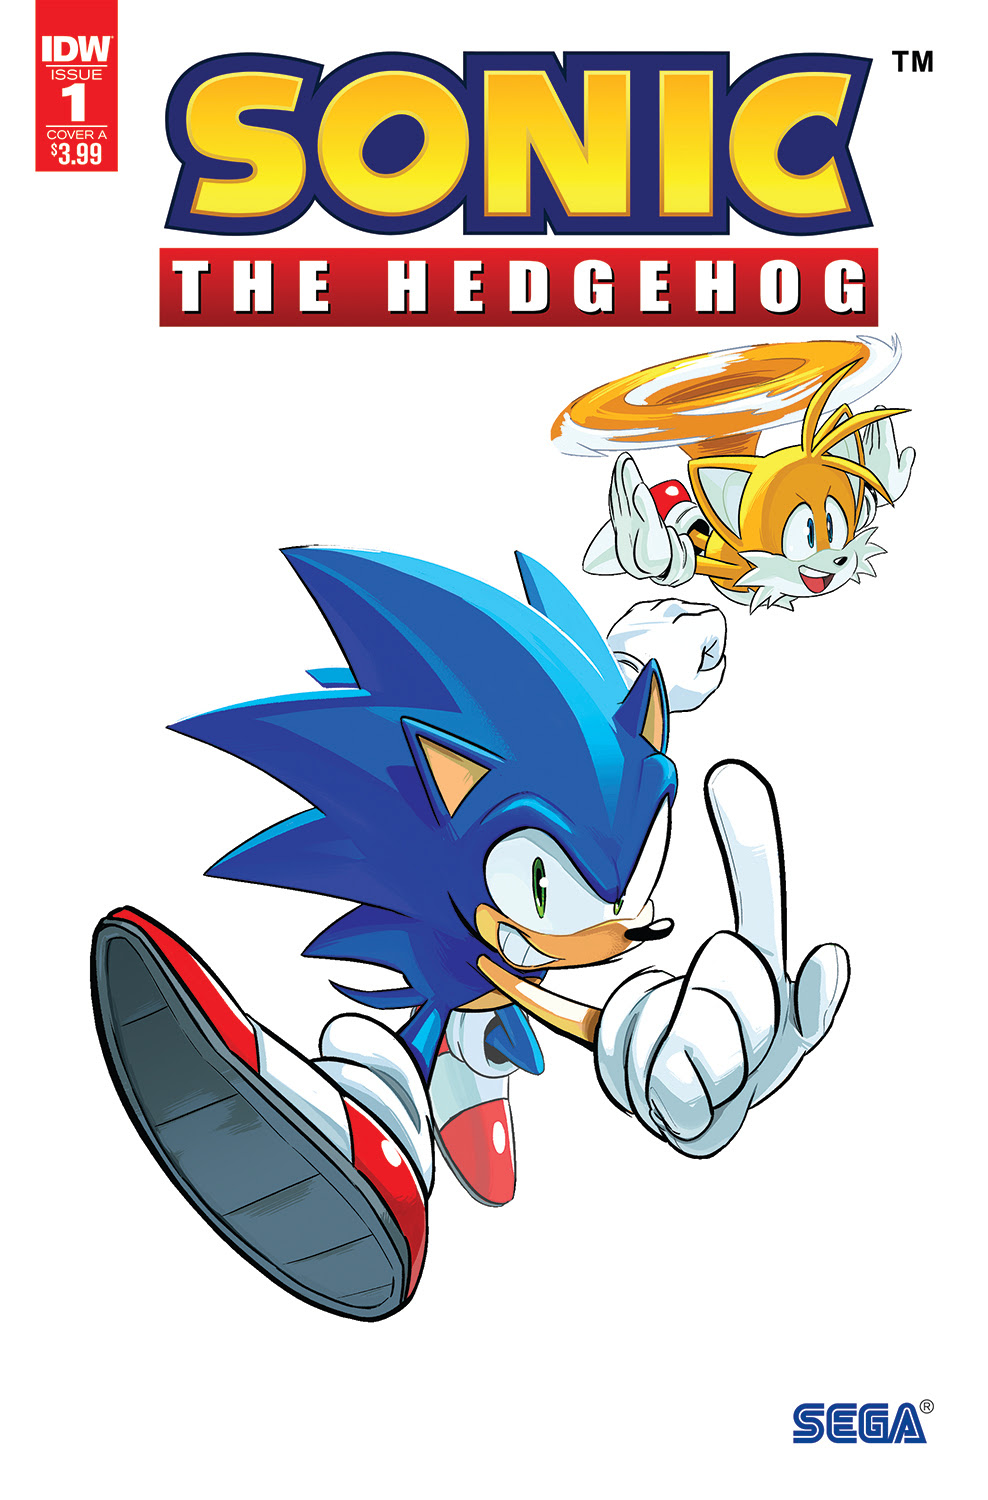 Sonic The Hedgehog Has 3 Issues in Multiple Printings, So We Made